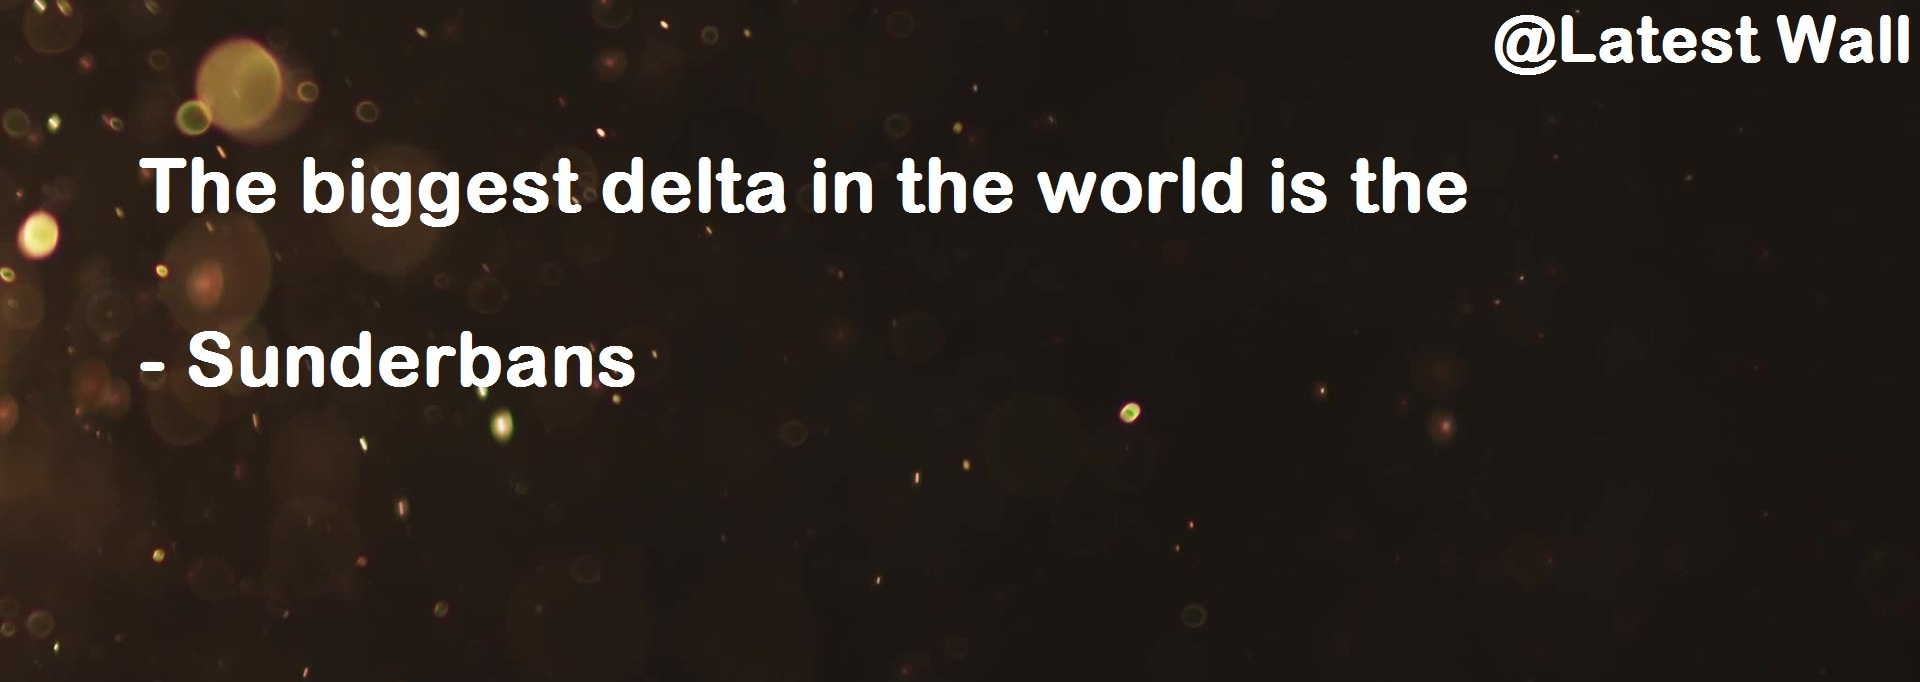 The biggest delta in the world is the